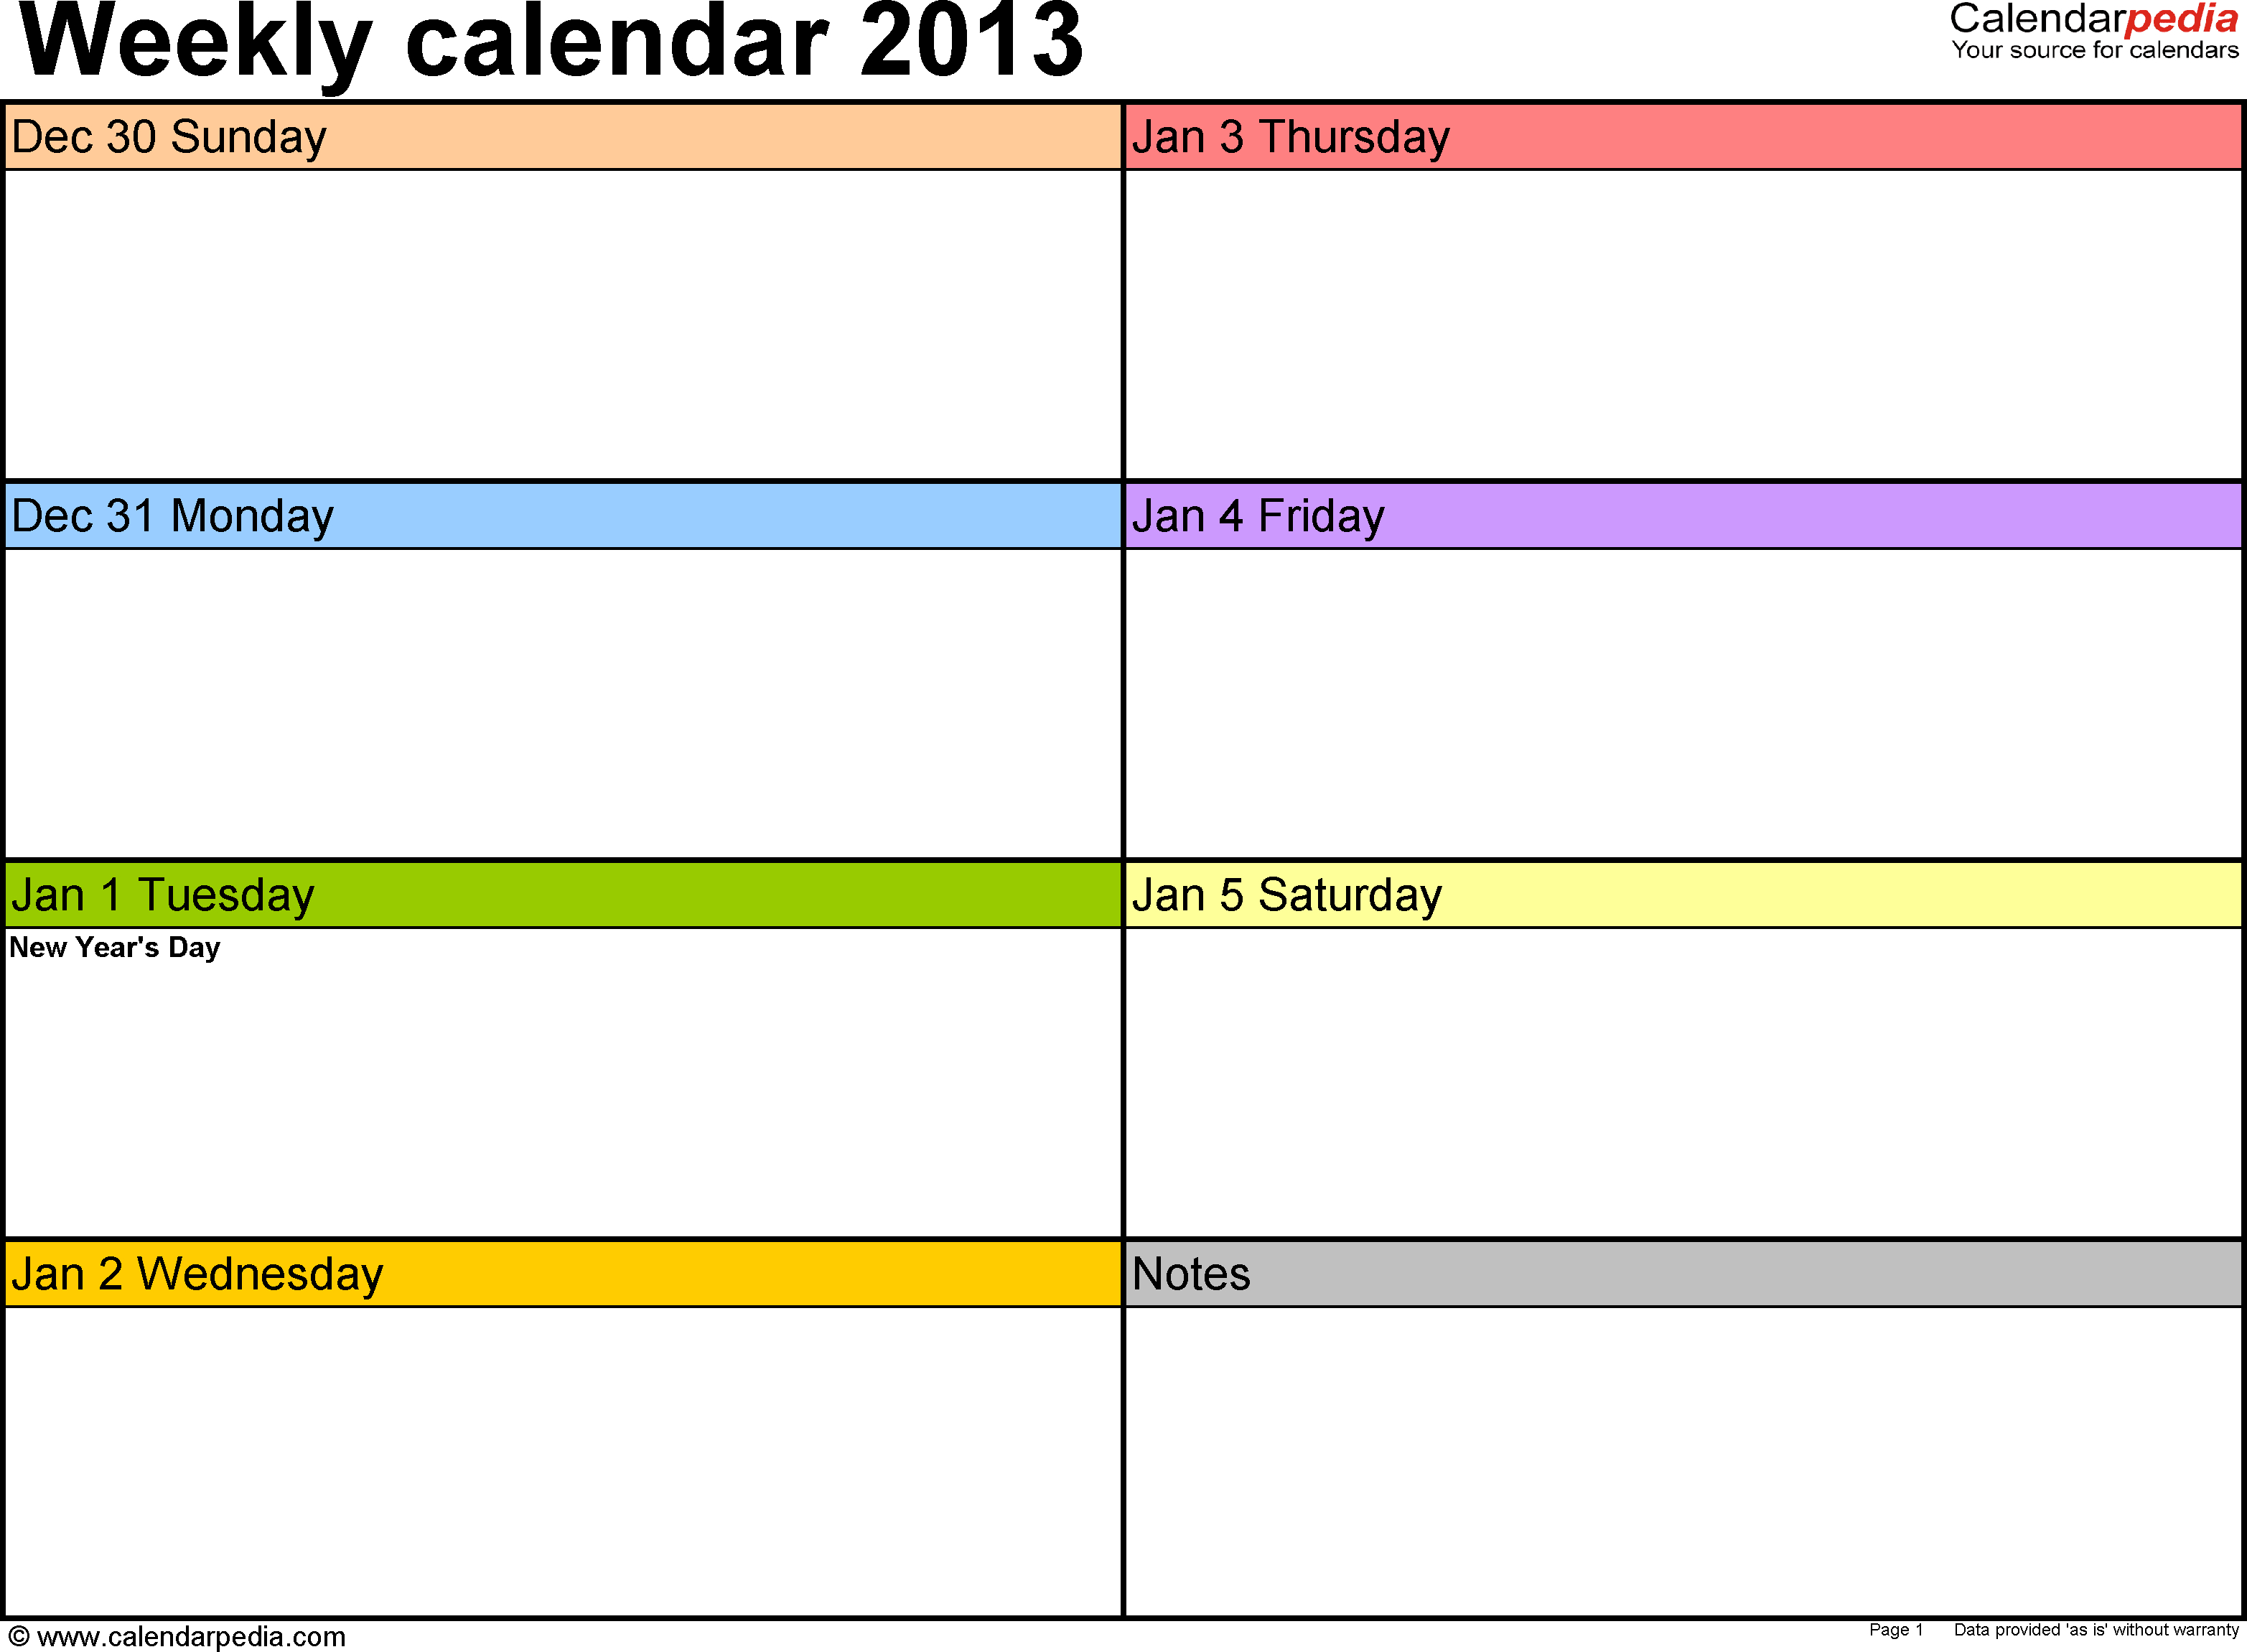 Weekly Calendar 2013 For Excel - 4 Free Printable Templates inside 7-Day Work Schedule Template Printable